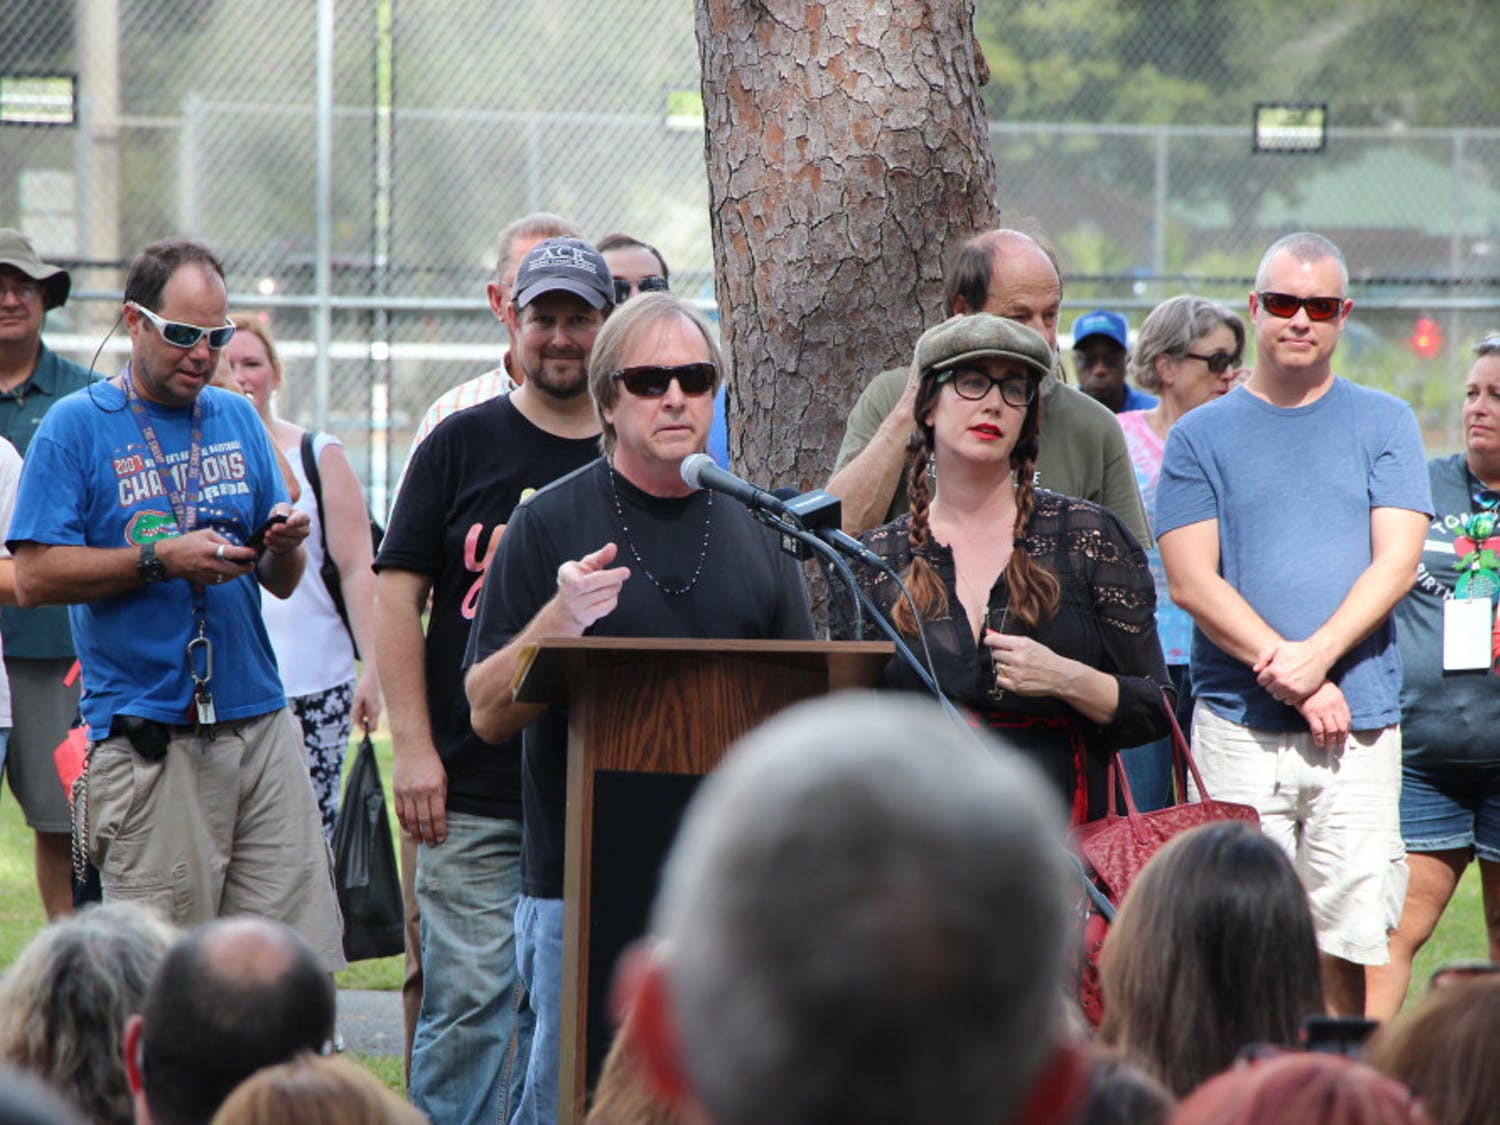 Tom Petty's brother and daughter, Bruce and Adria Petty stand behind the podium at the dedication of Tom Petty Park on Oct. 20, 2018. Both gave made statements and thanked the community before the unveiling of the new sign.